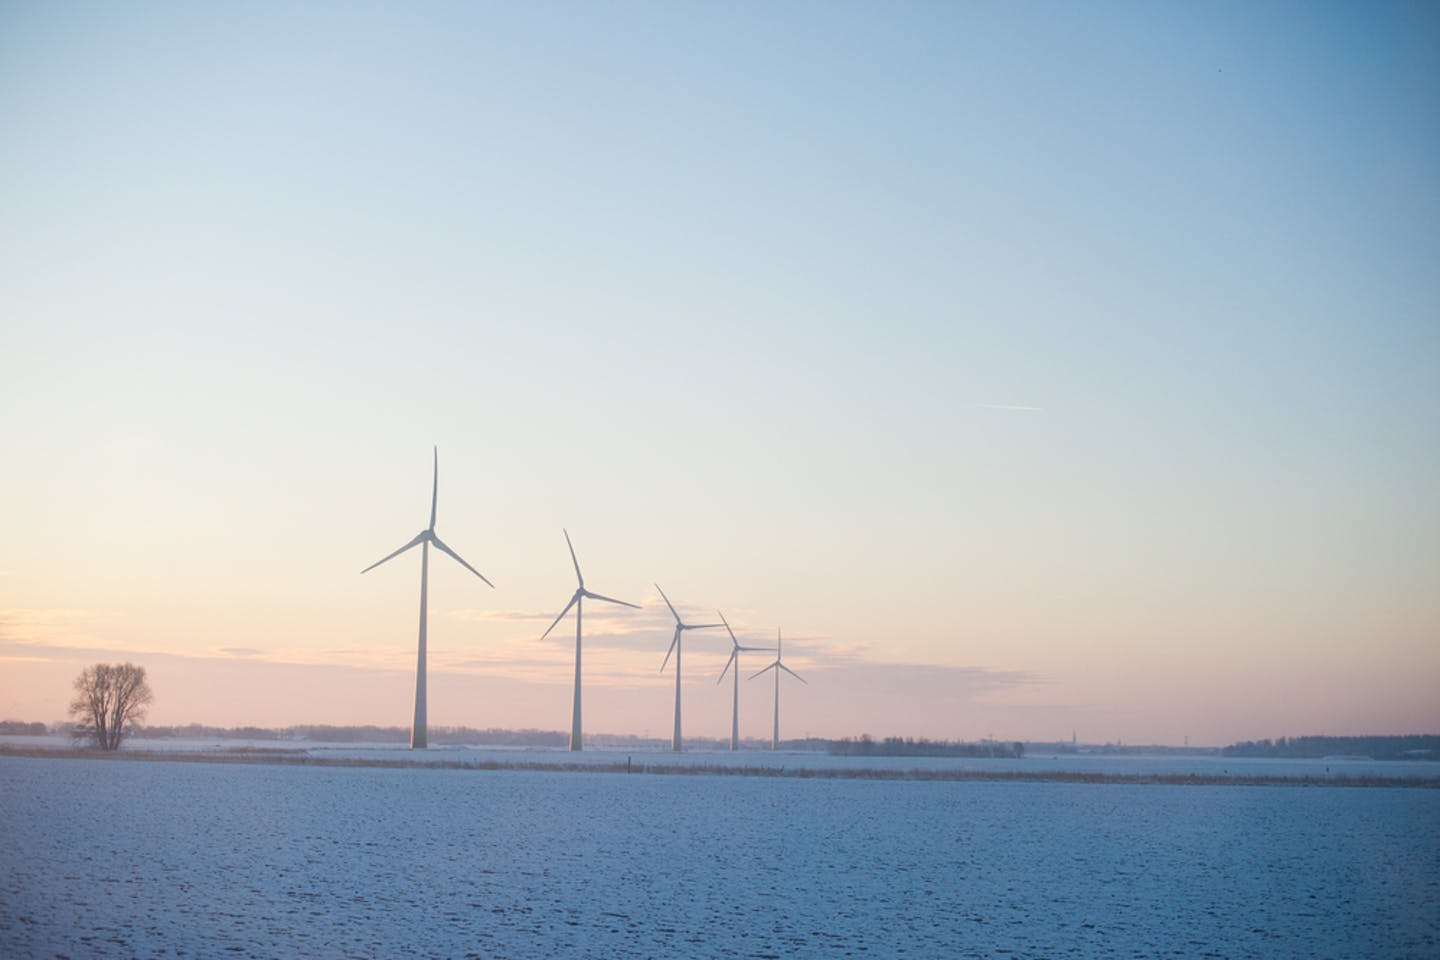 On-shore wind turbines in Europe